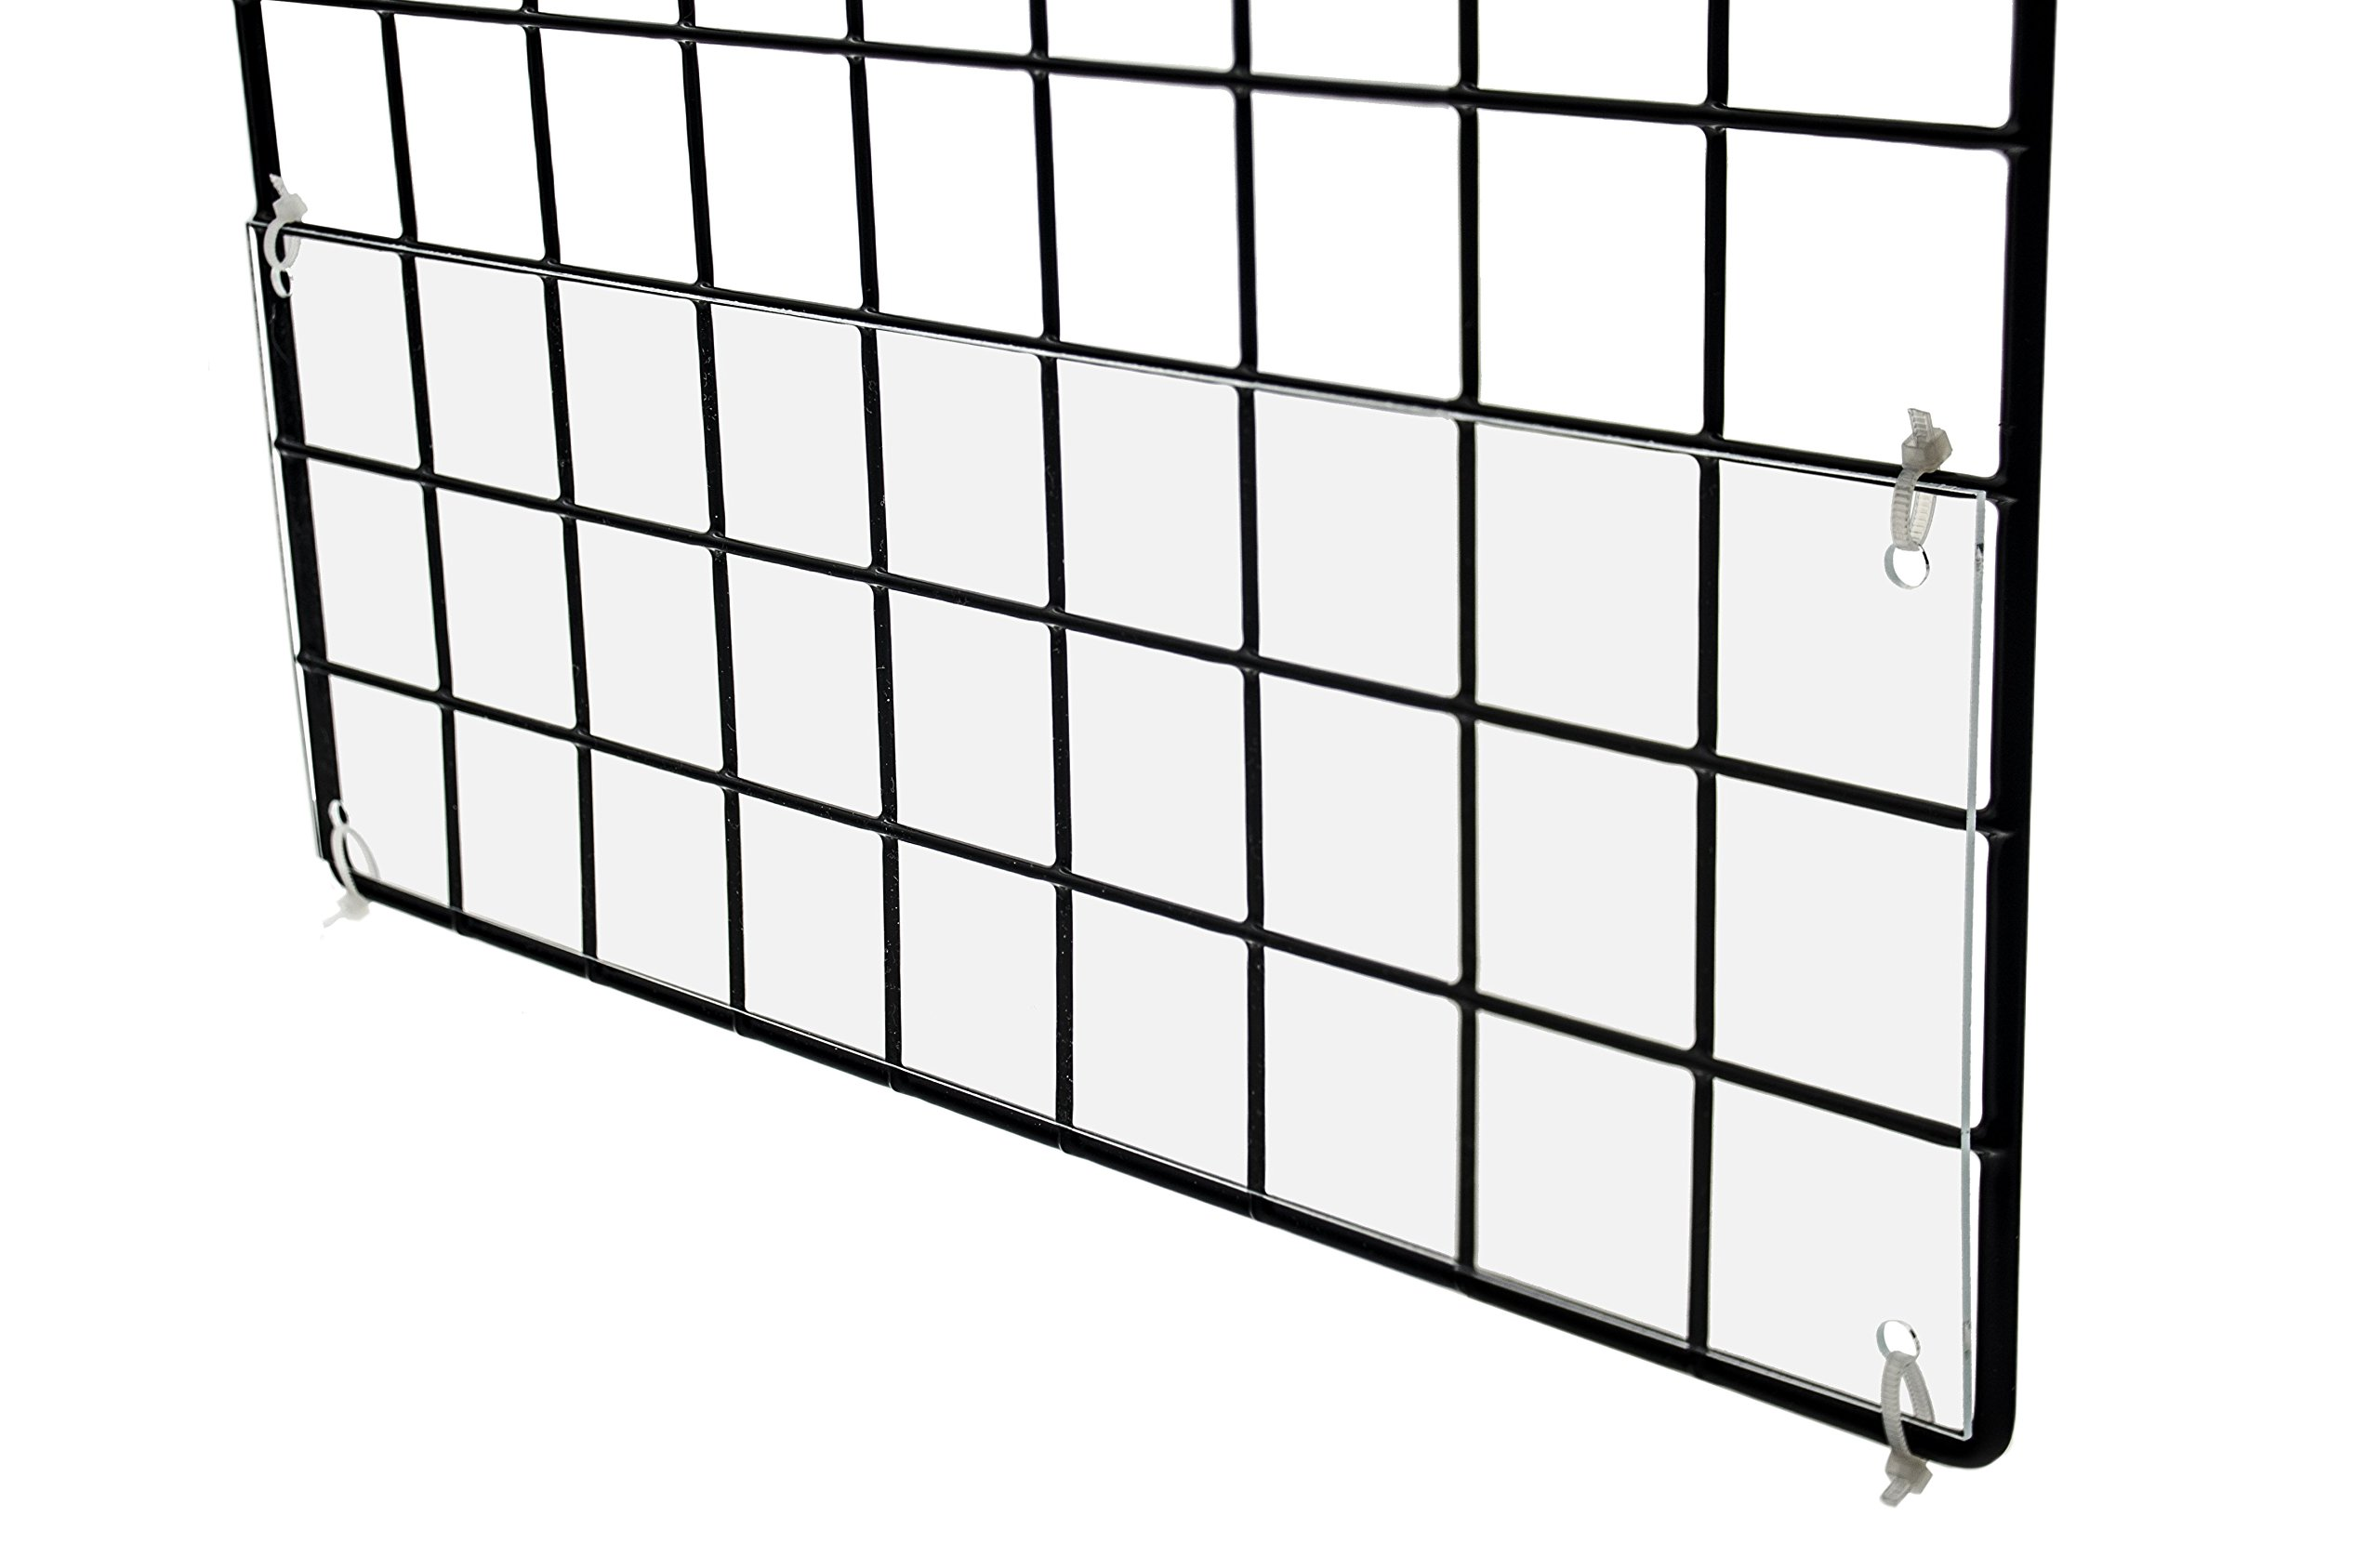 Marketing Holders Cage Edge Liner pet Rabbit & Guinea Pig cage Urine Guard Side Lining 2 Packs of 8 by Marketing Holders (Image #5)